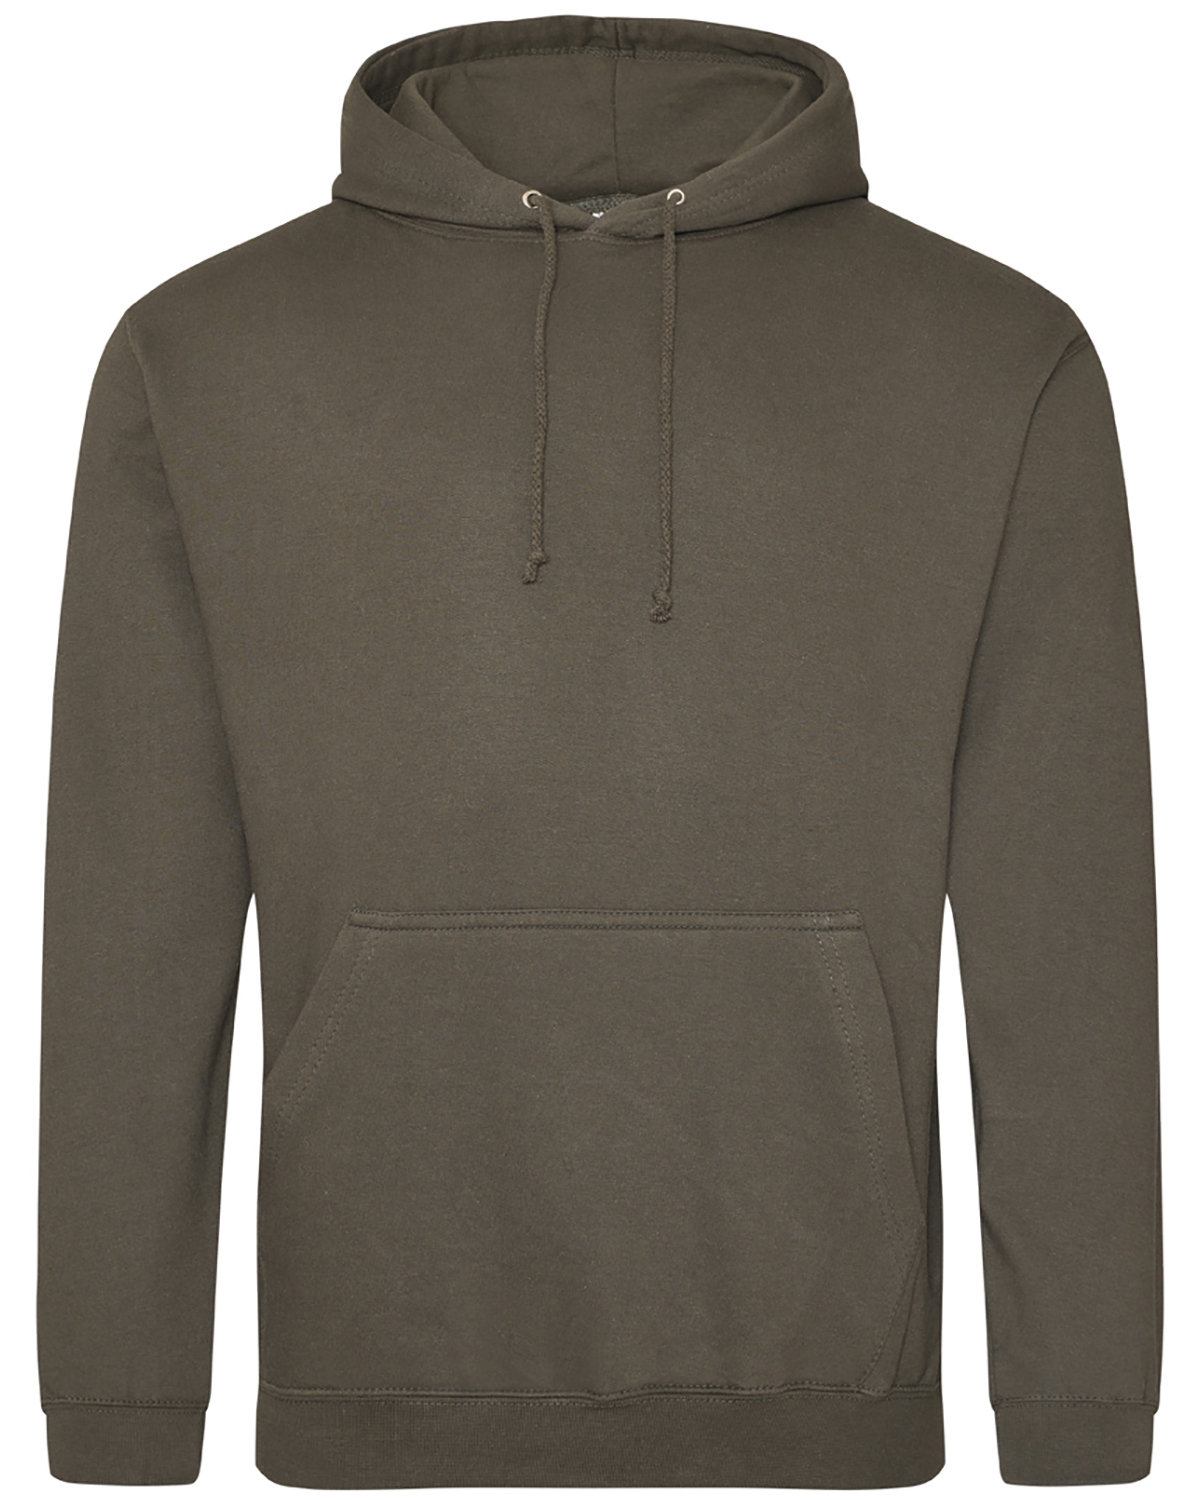 Just Hoods By AWDis Men's 80/20 Midweight College Hooded Sweatshirt OLIVE GREEN